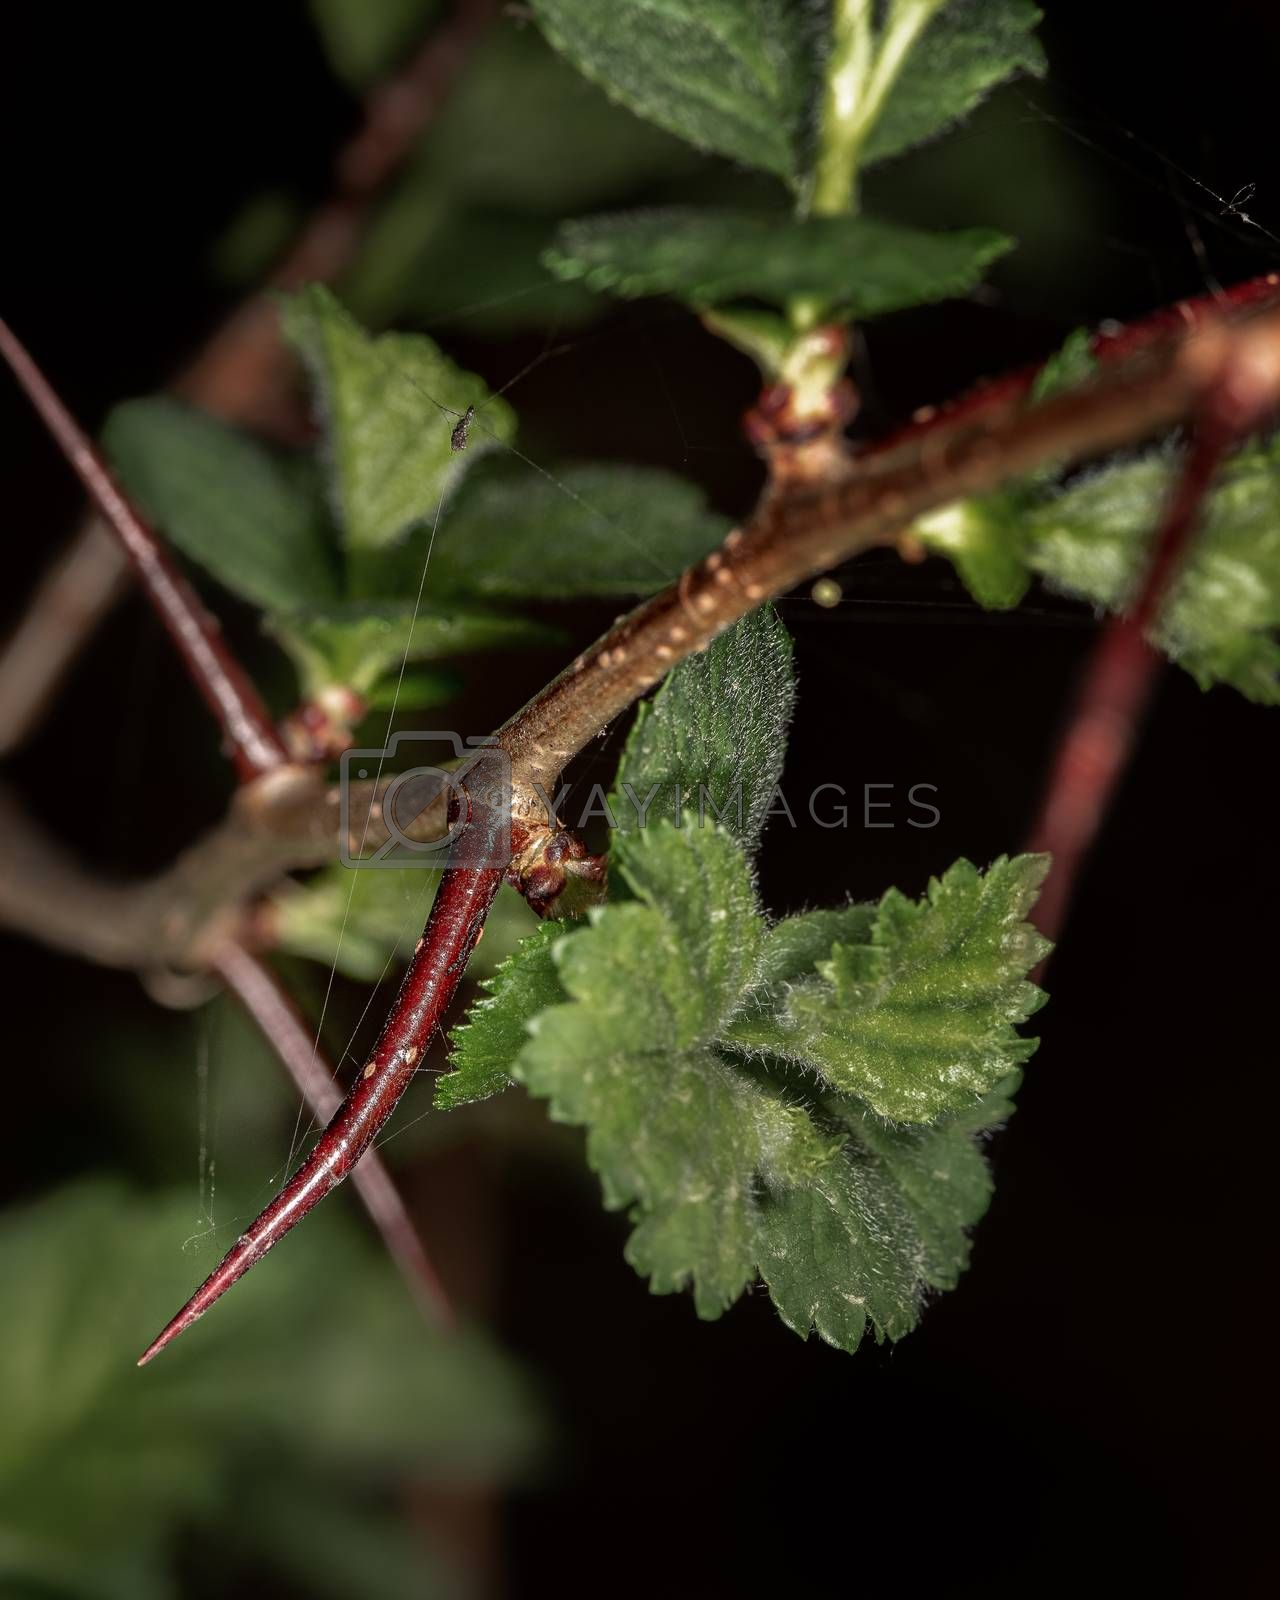 A hawthorn branch with thorns and young green leaves close up on a dark background